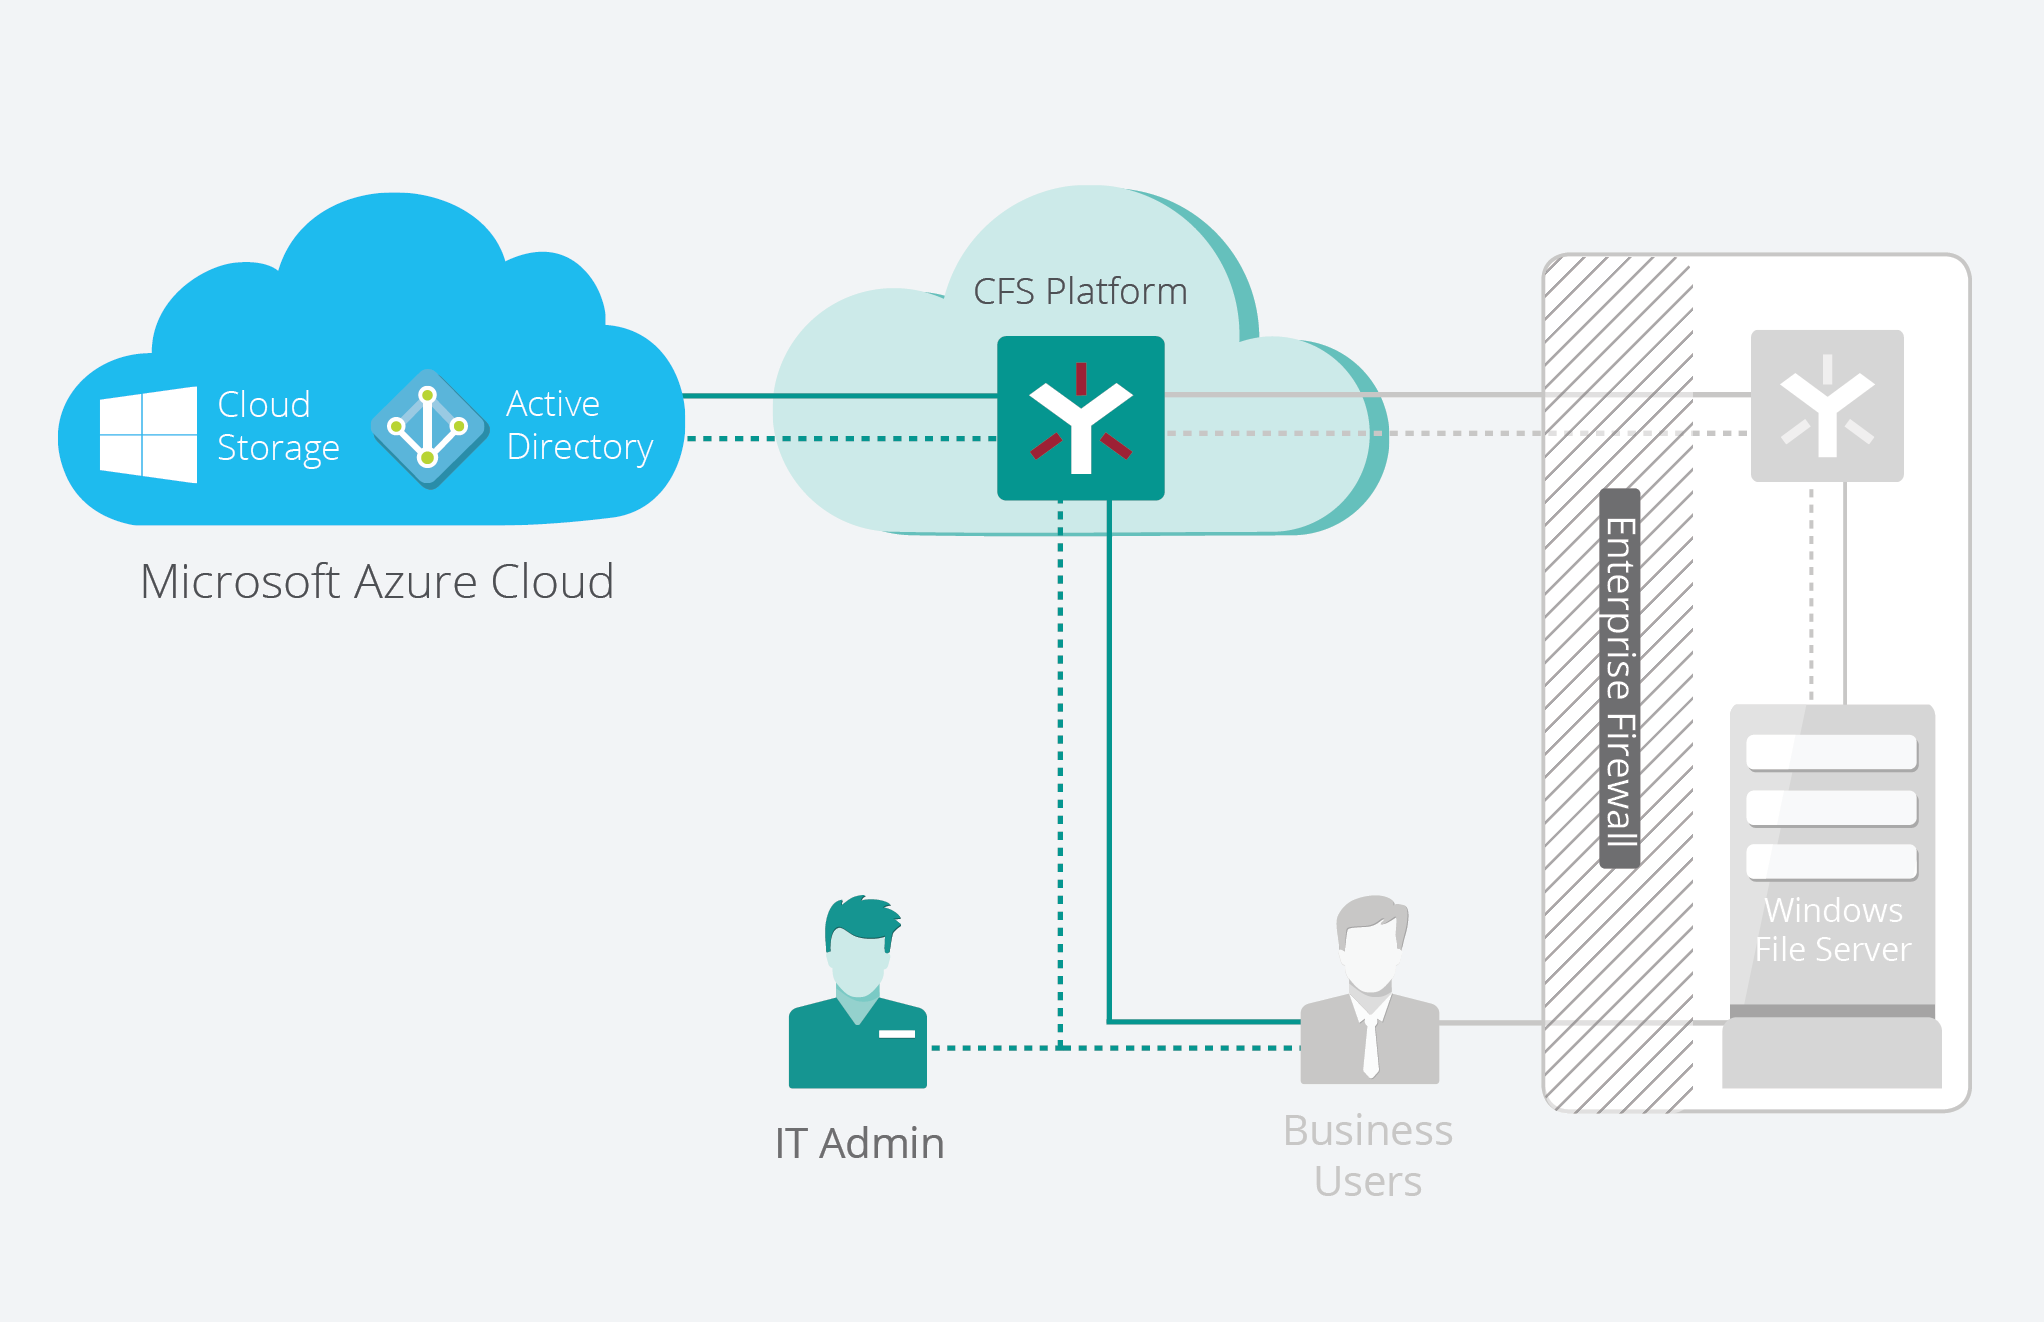 Then he leverages Egnyte's integration with Azure Active Directory to simplify user groups and associated permissions